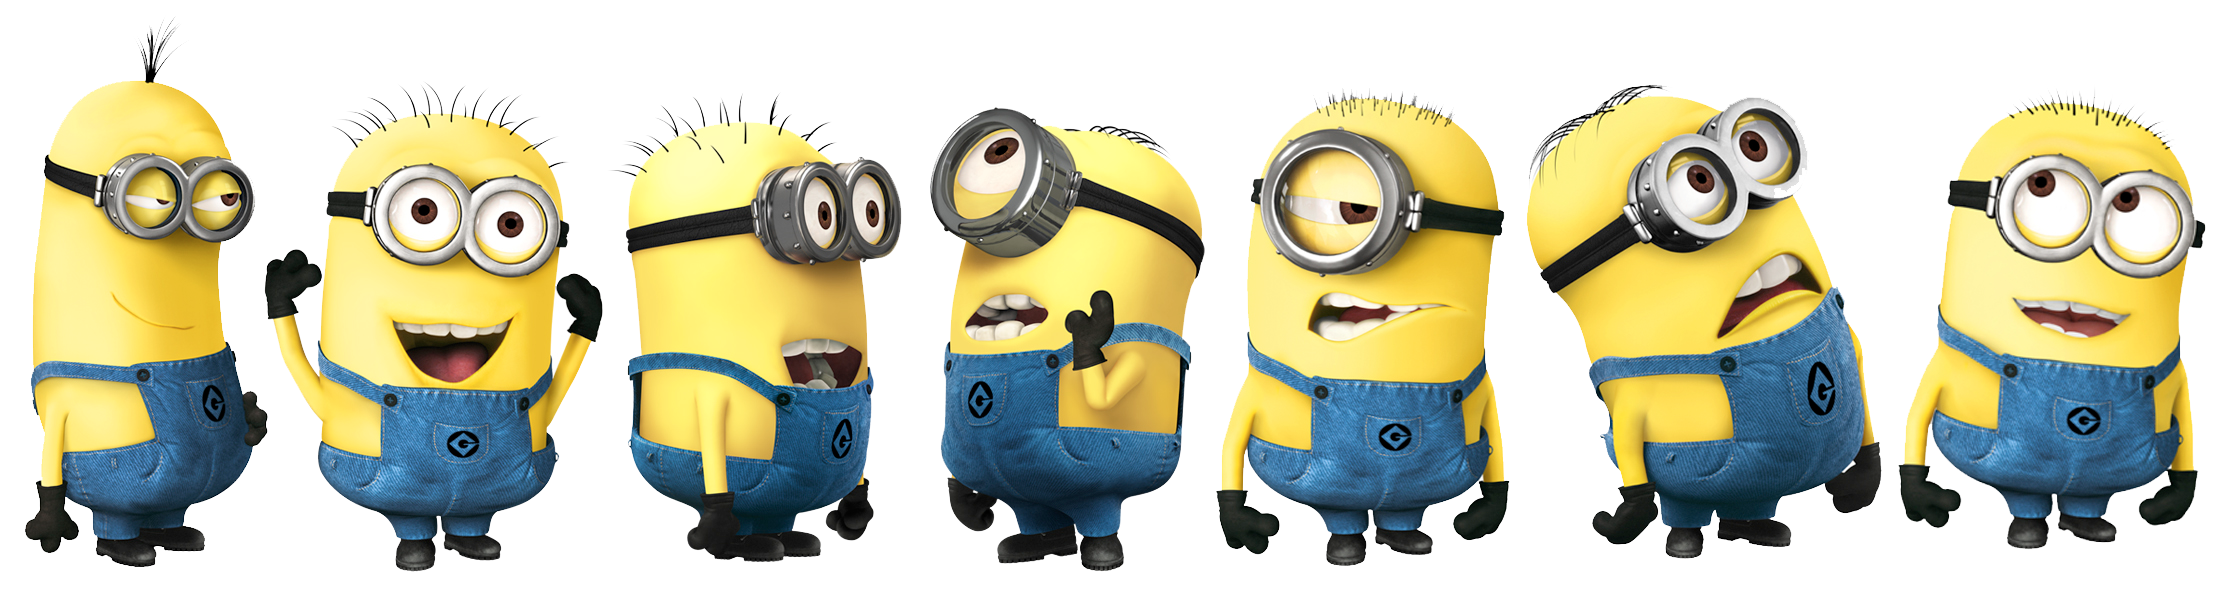 Minion character clipart png transparent Minions clipart png - ClipartFest png transparent